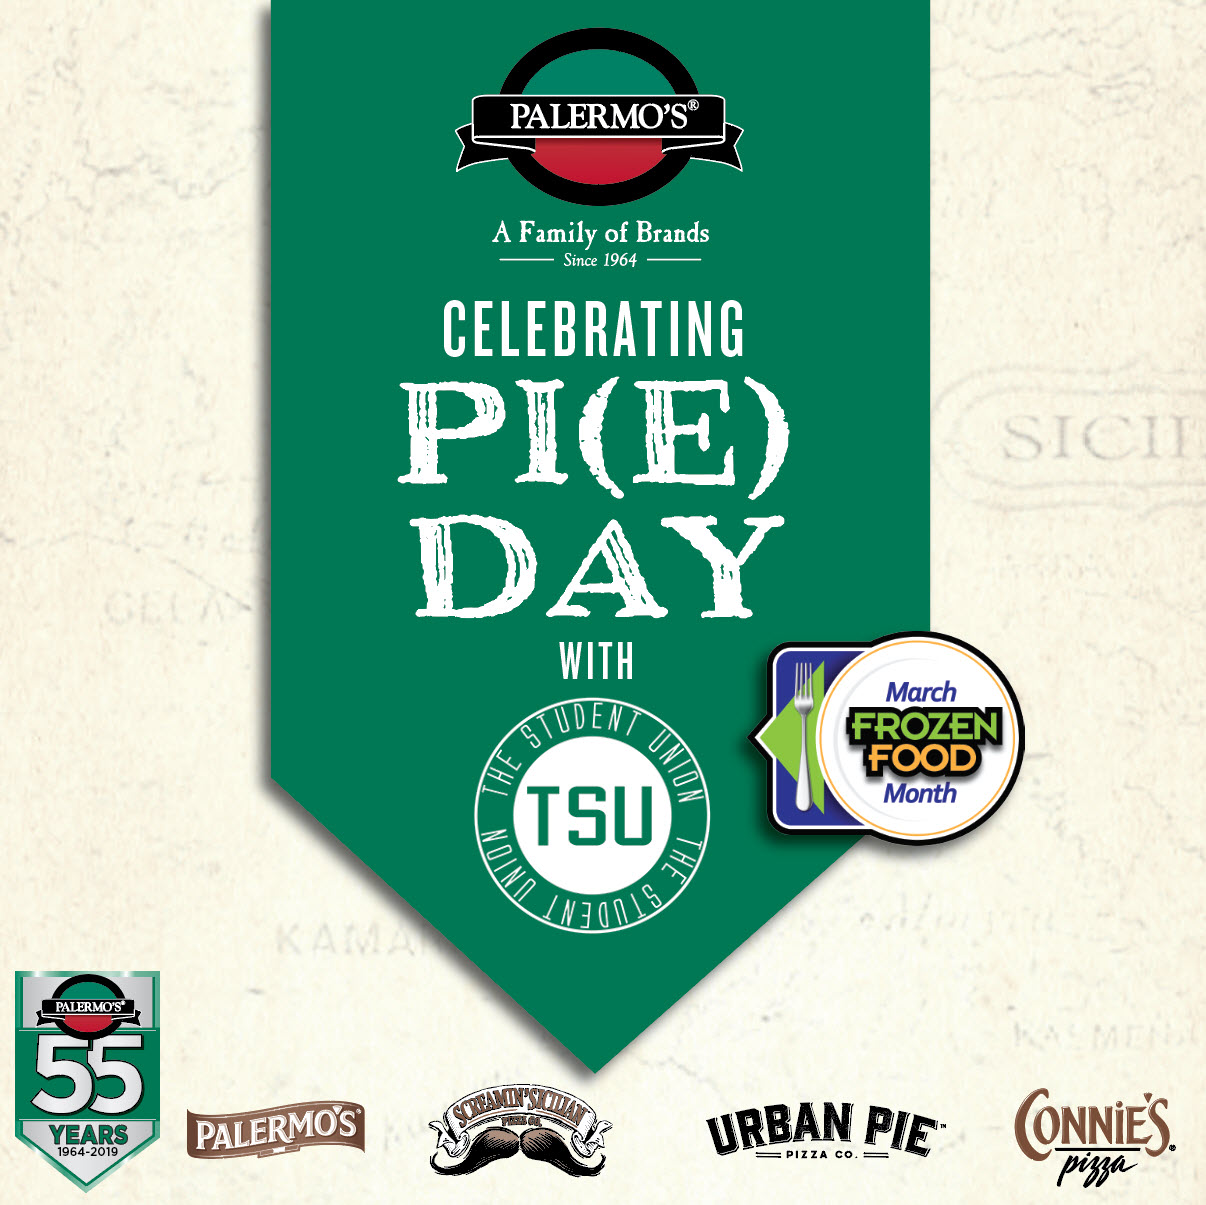 3.14: Celebrate Pi(e) Day with The Student Union